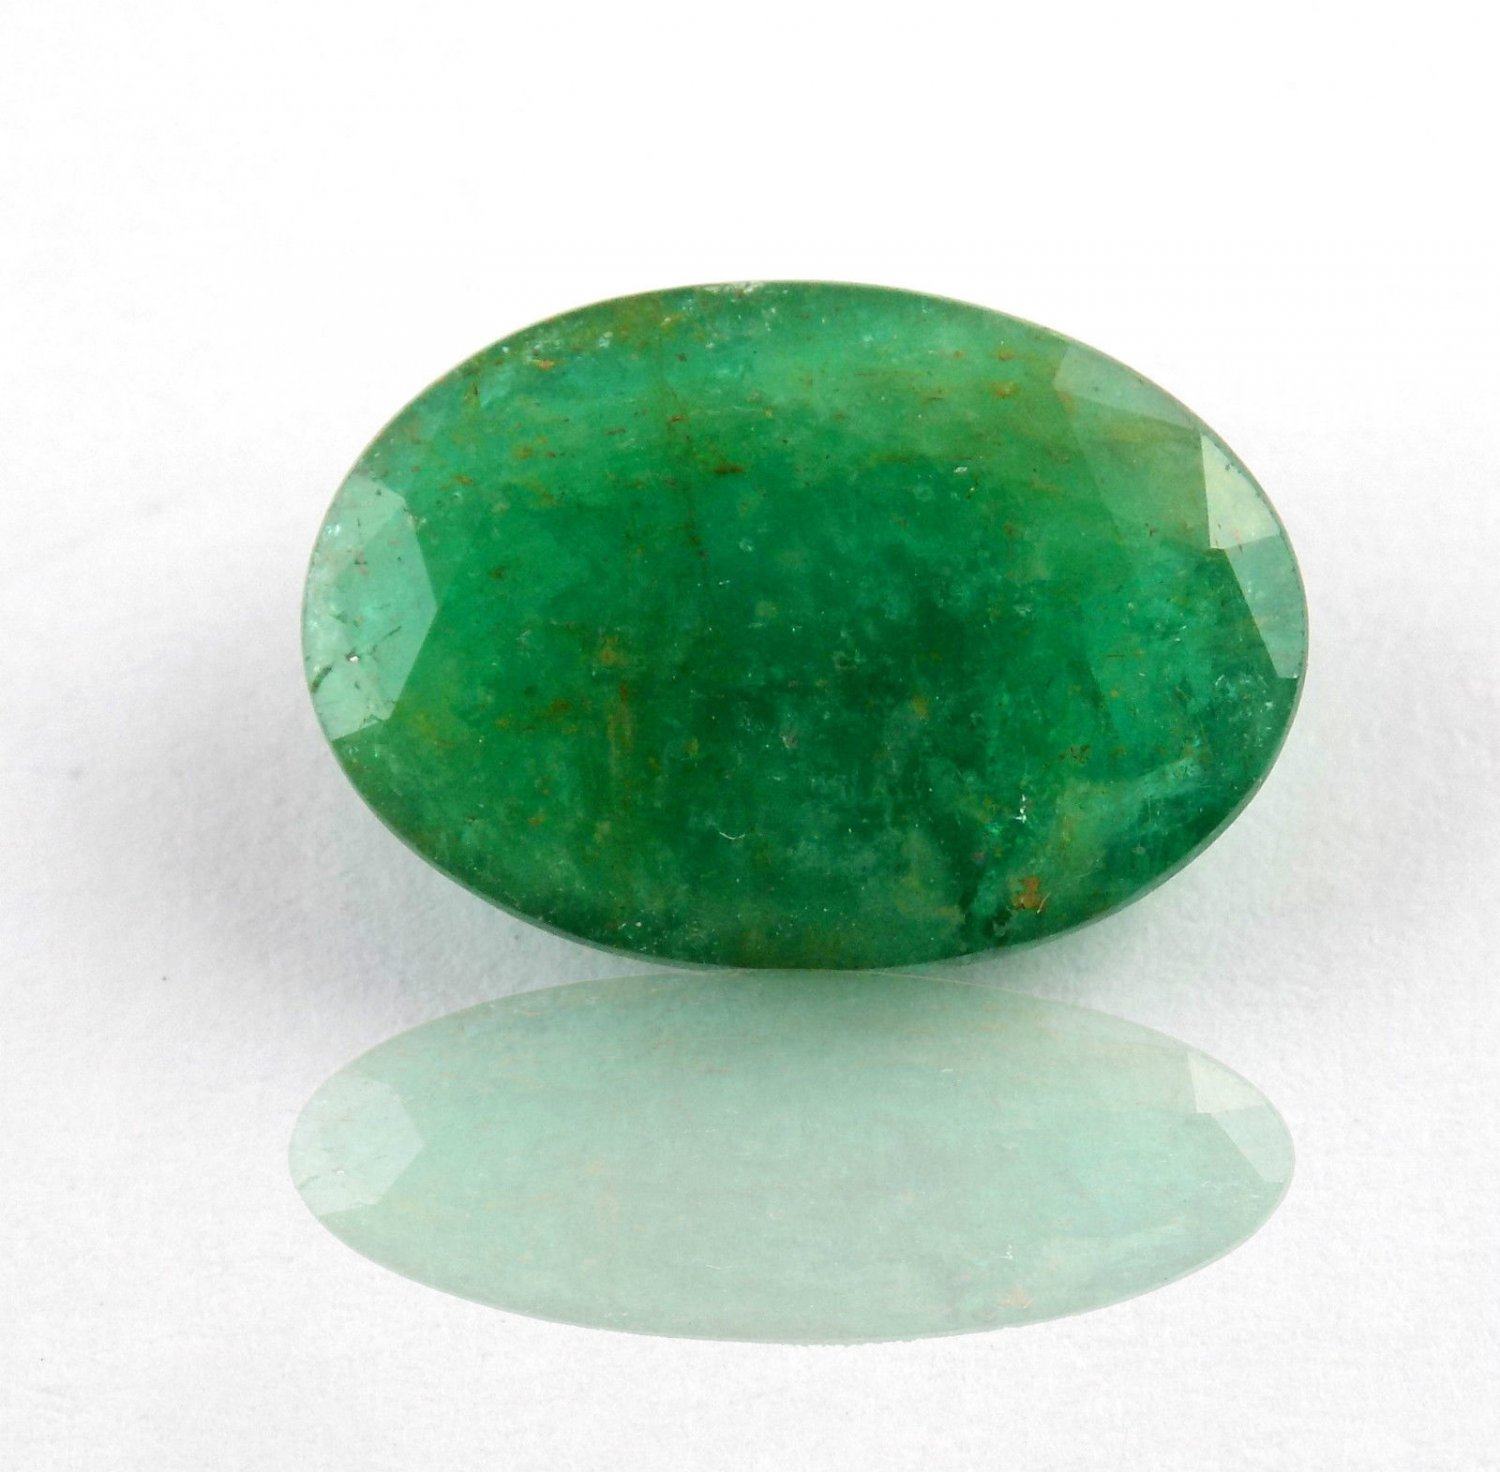 1 Pcs Natural Emerald Oval 9x13mm 3.69Cts Faceted Cut Handmade Making Gemstone